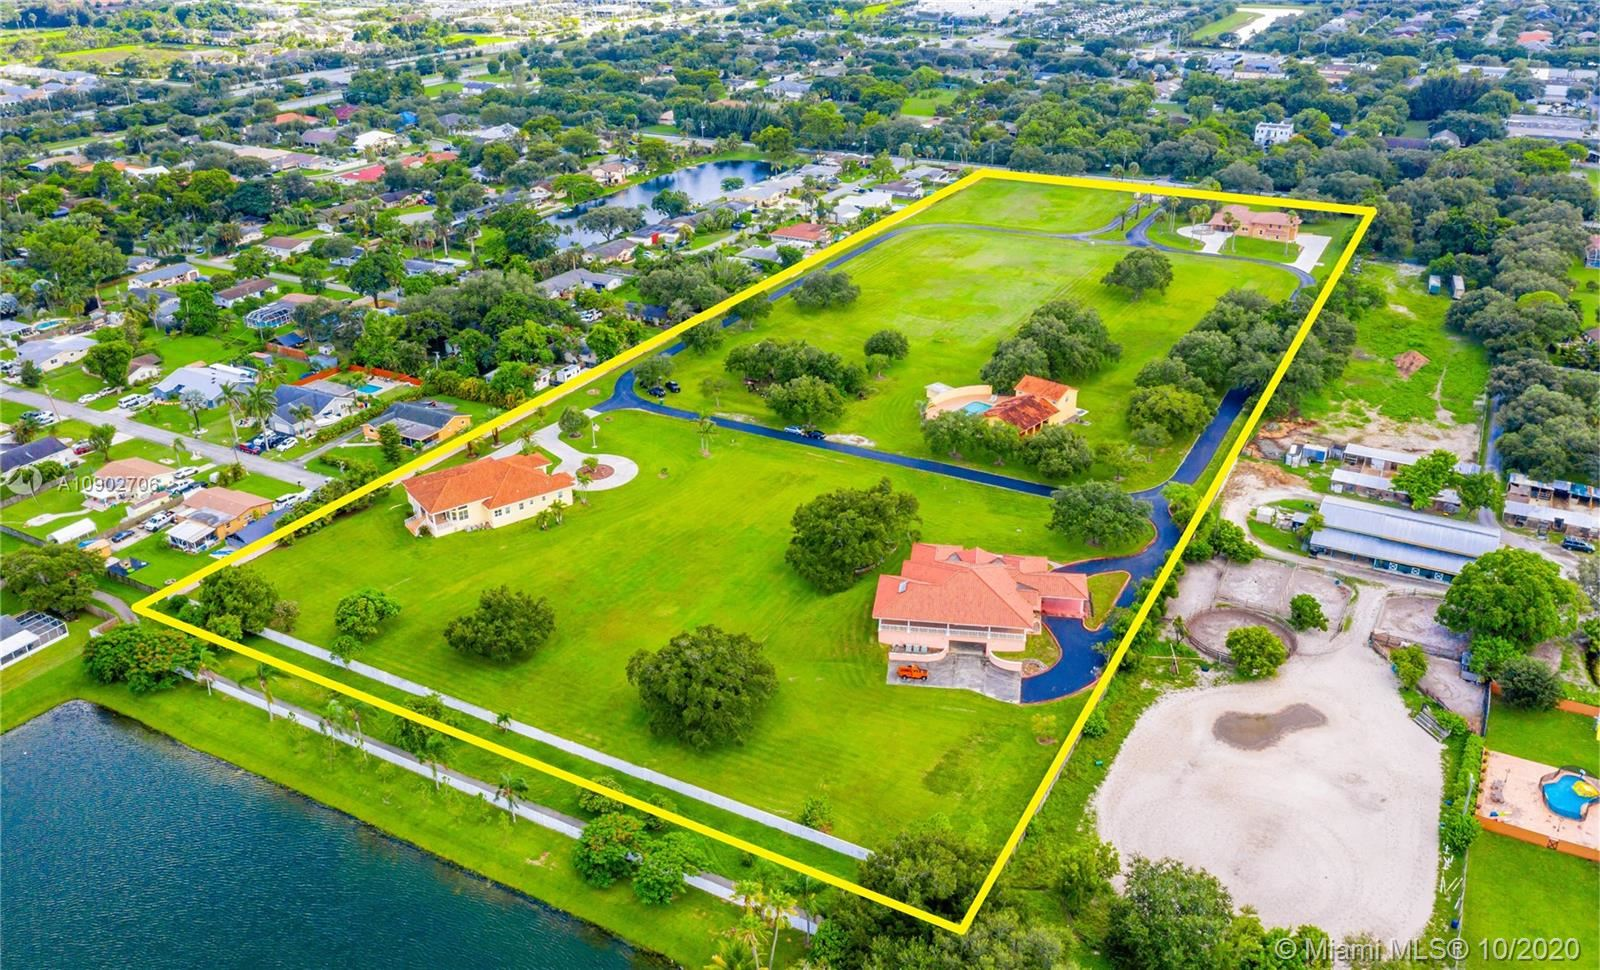 4190 SW 75th Cir E, Davie, FL 33314 - #: A10902706